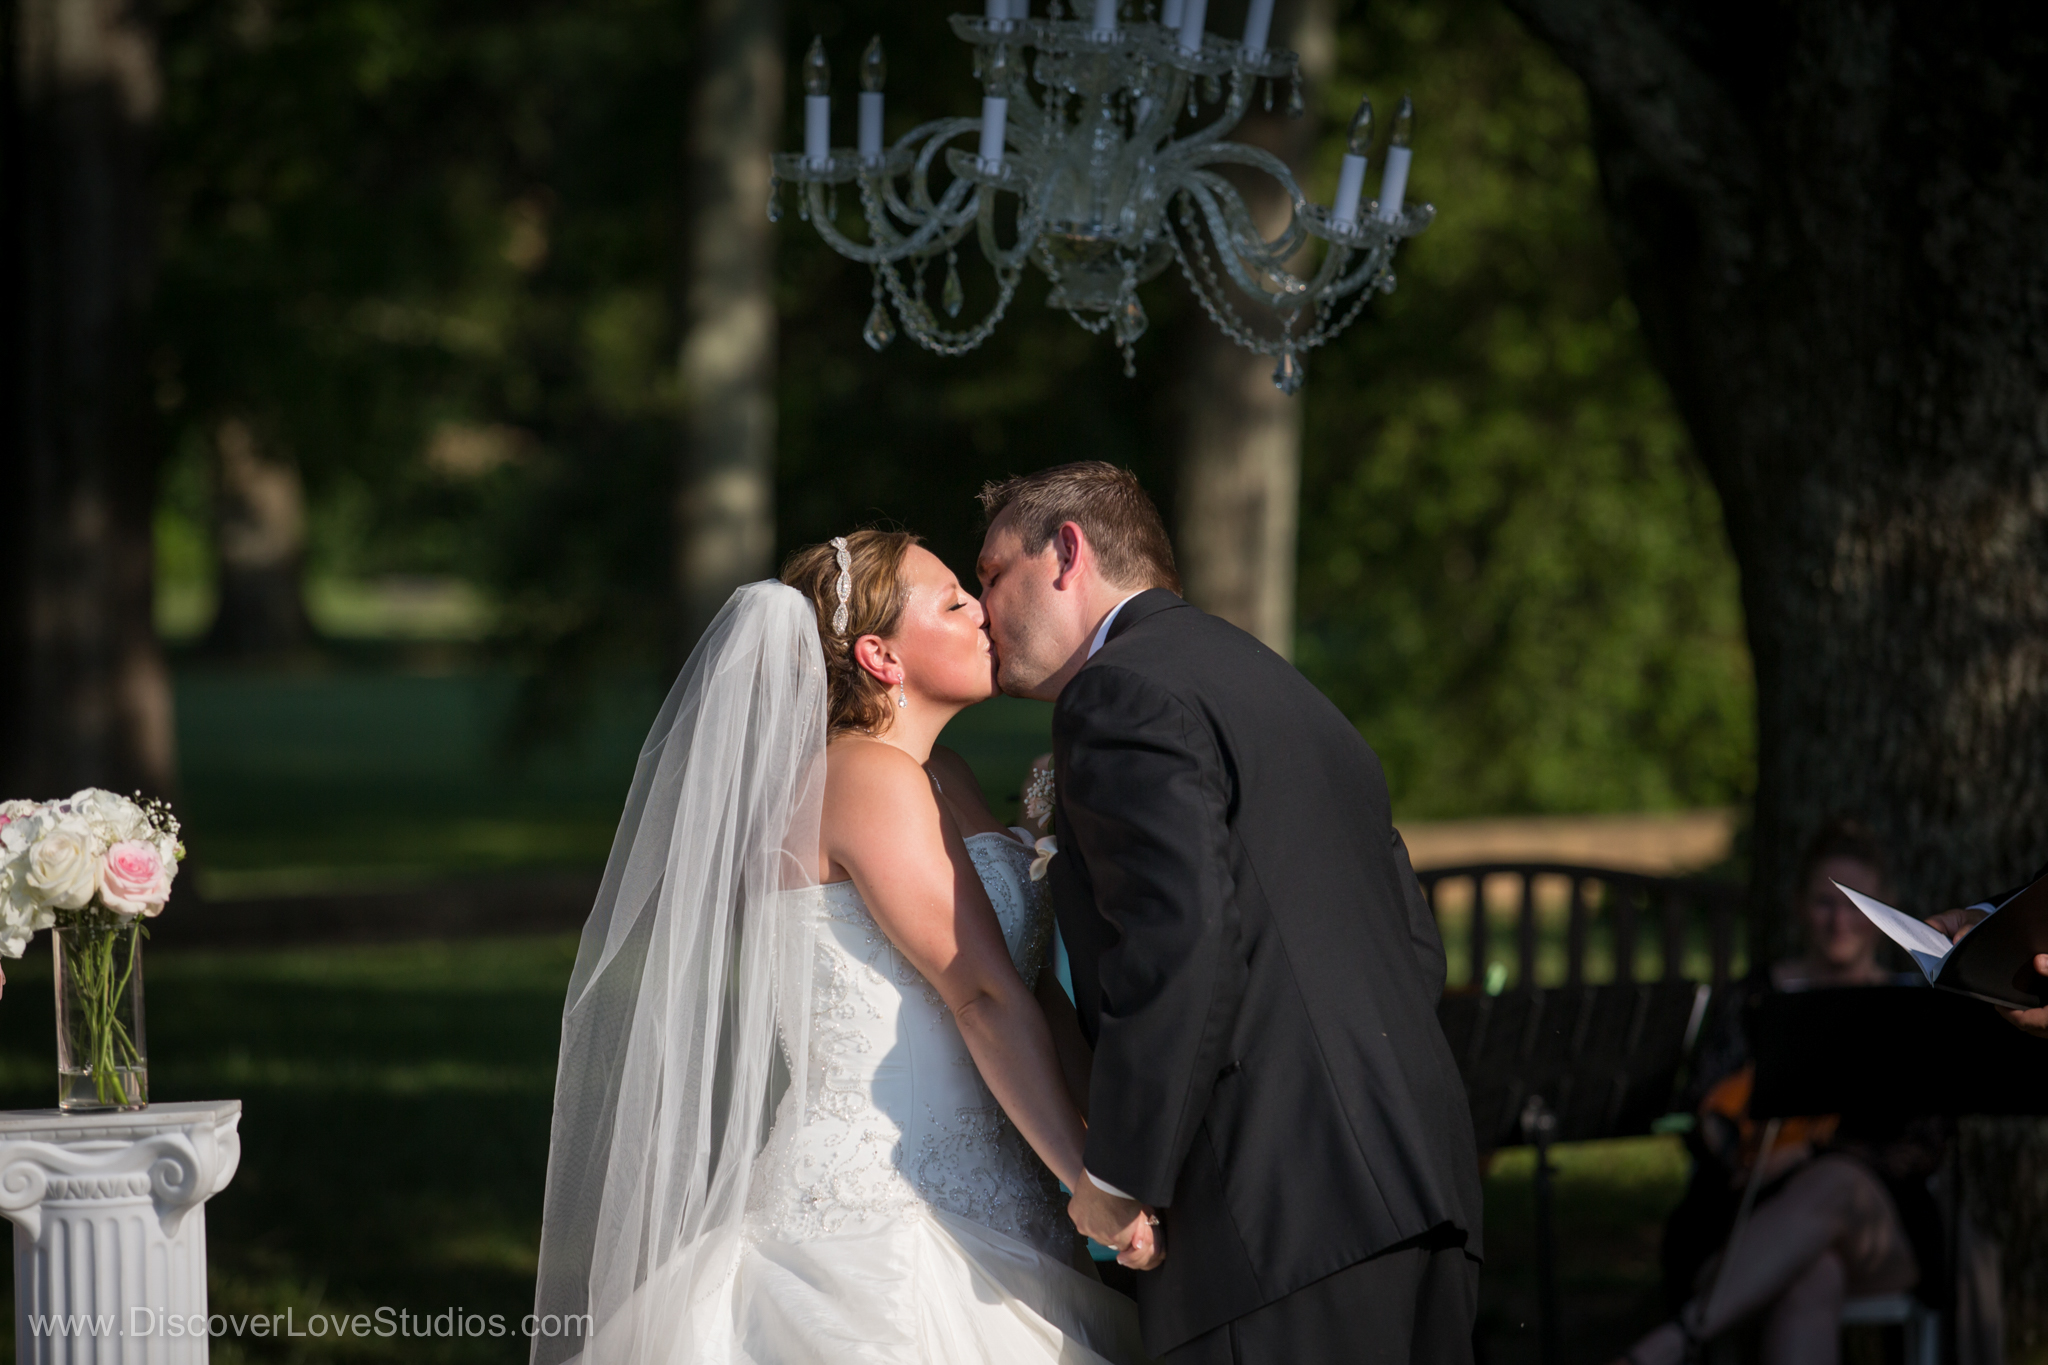 bride and groom kissing during their ceremony under a chandelier from Cooke Rentals.